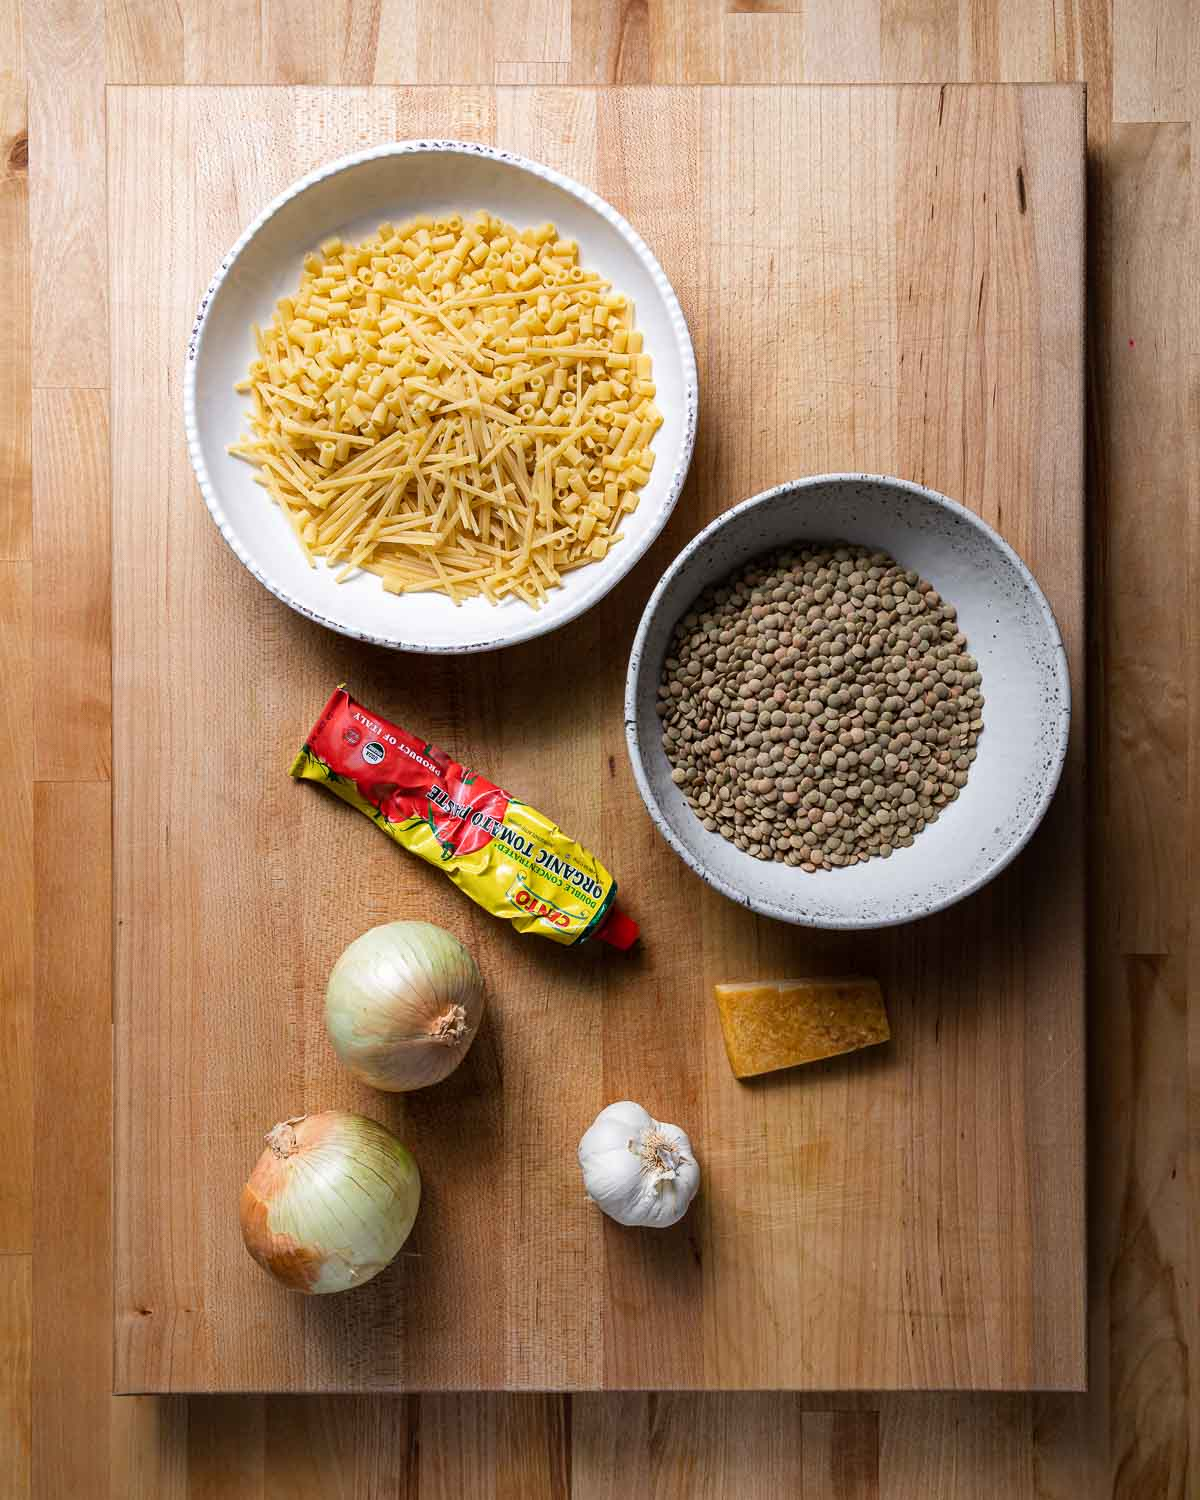 Ingredients shown: bowl of broken spaghetti and various pasta, lentils, tomato paste, onions, garlic, and parmesan rind.